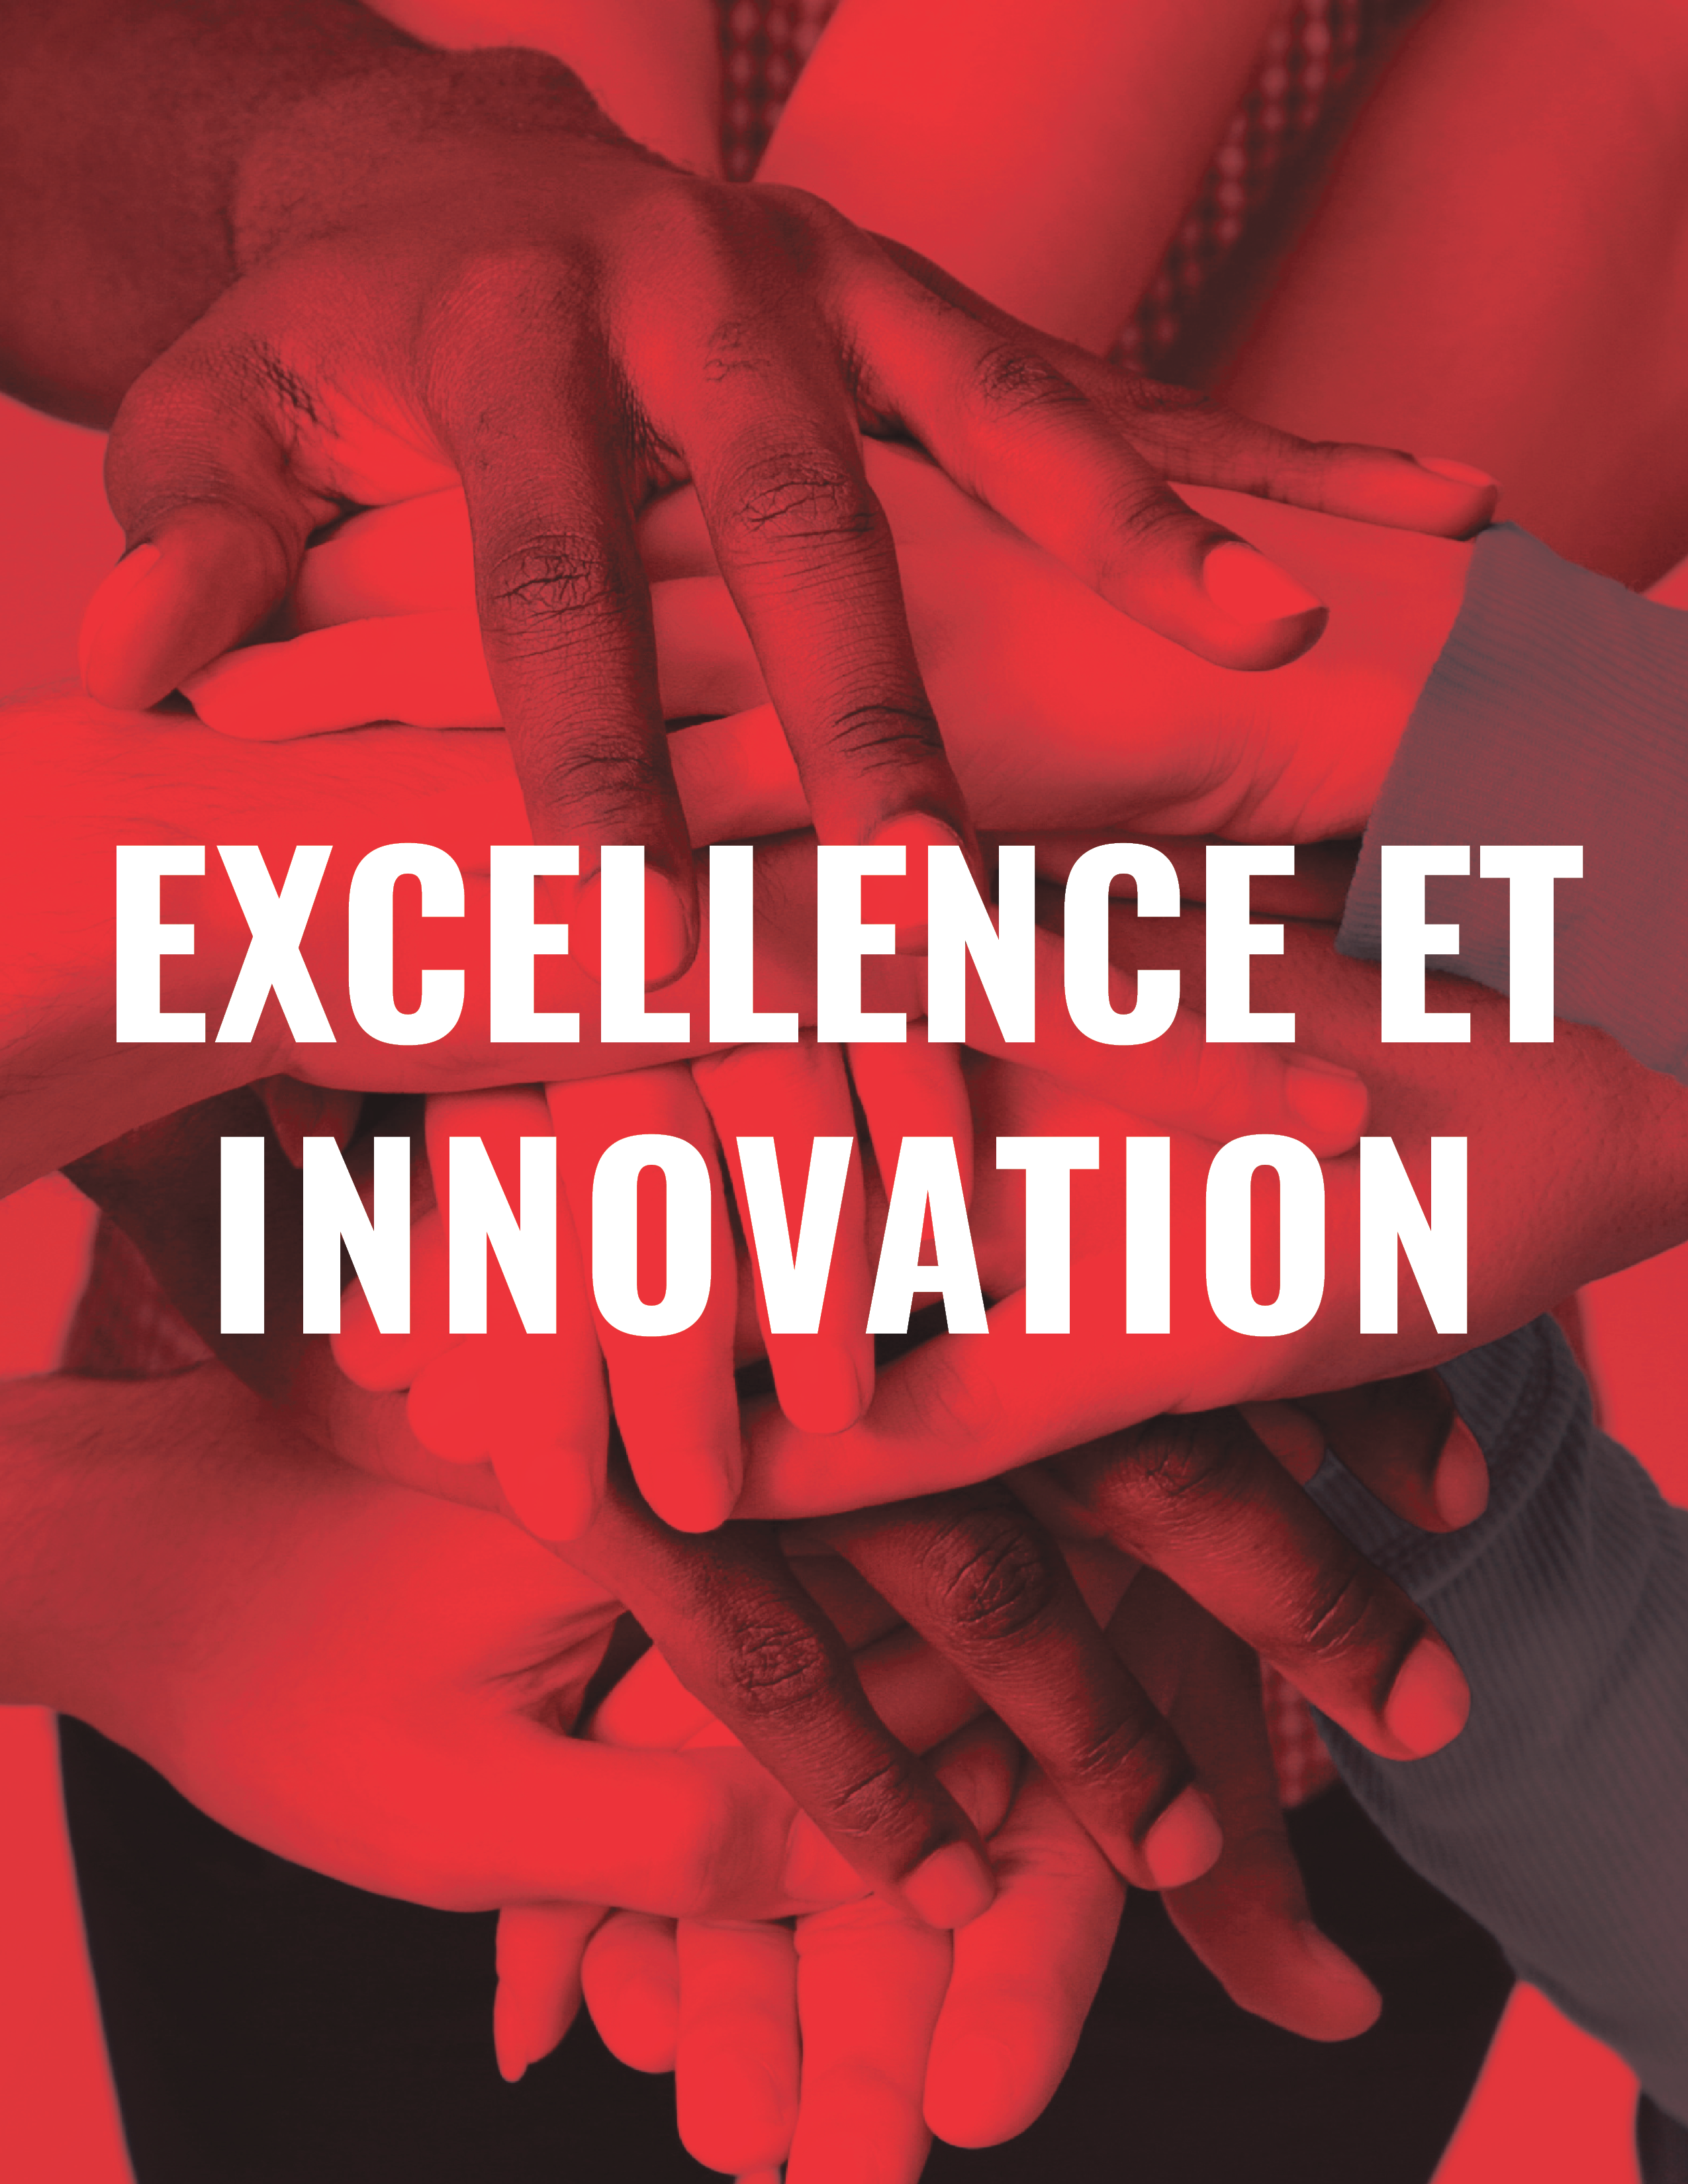 Excellence et innovation